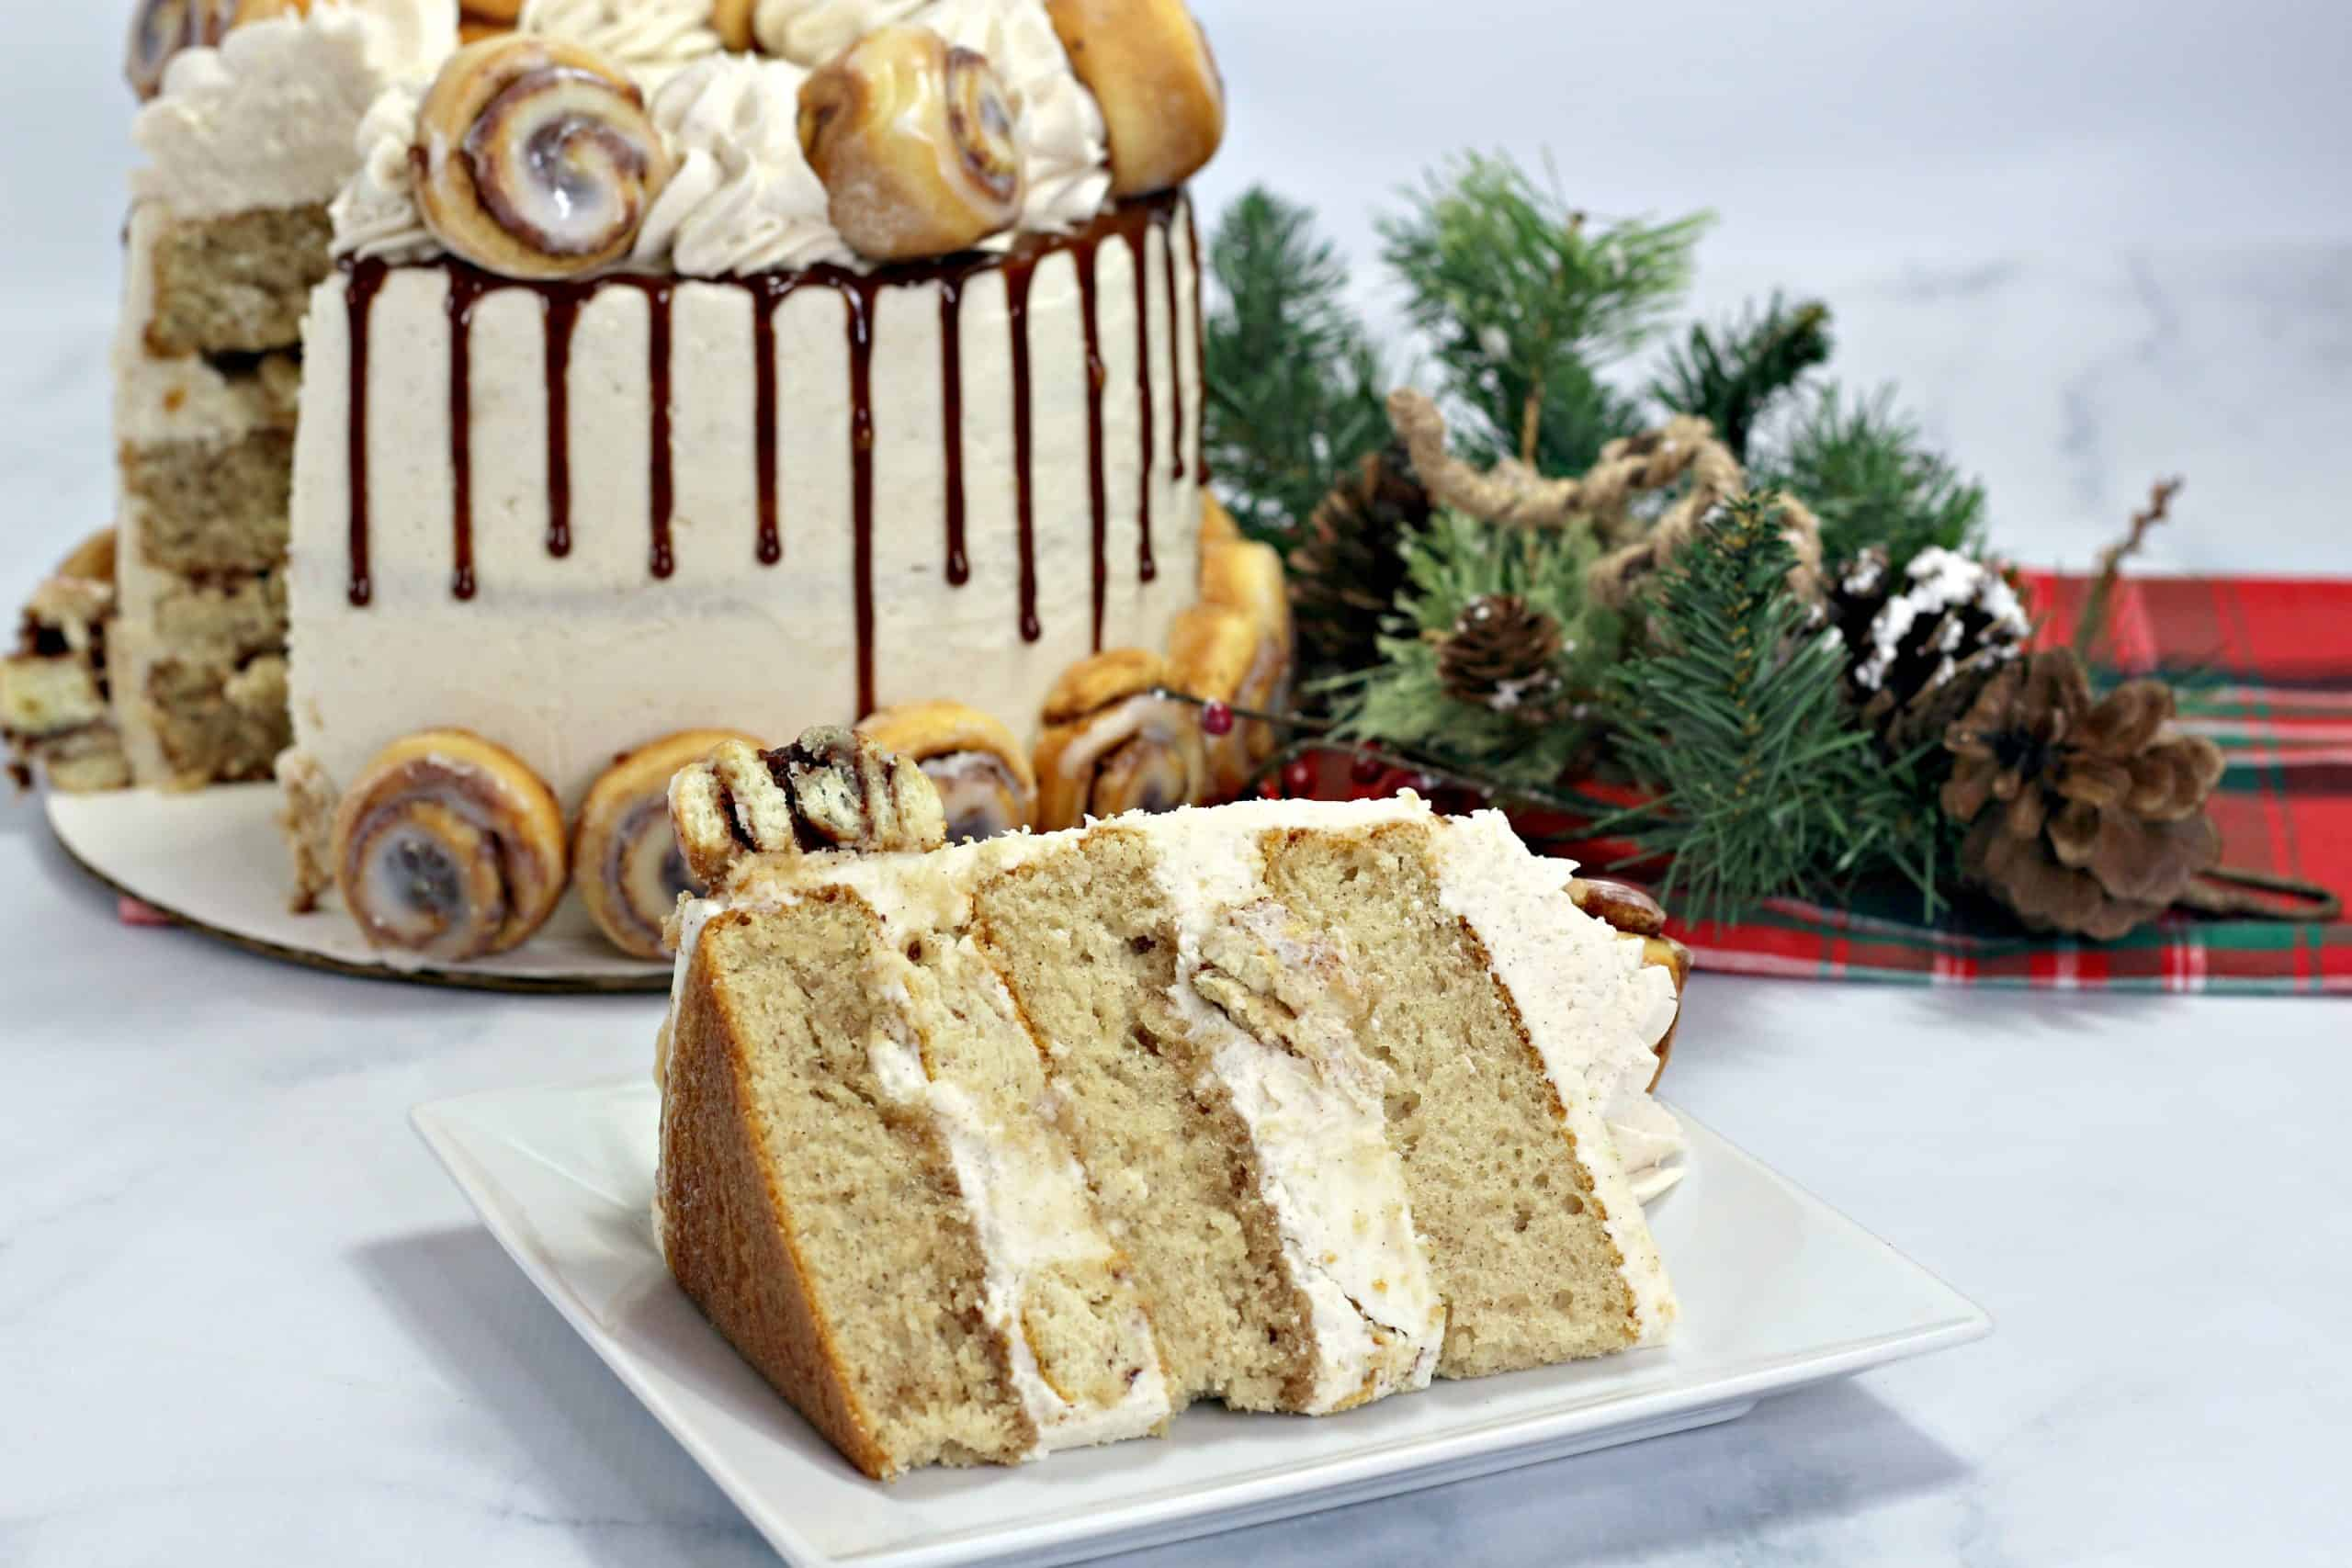 slice of cinnamon cake with cake in background